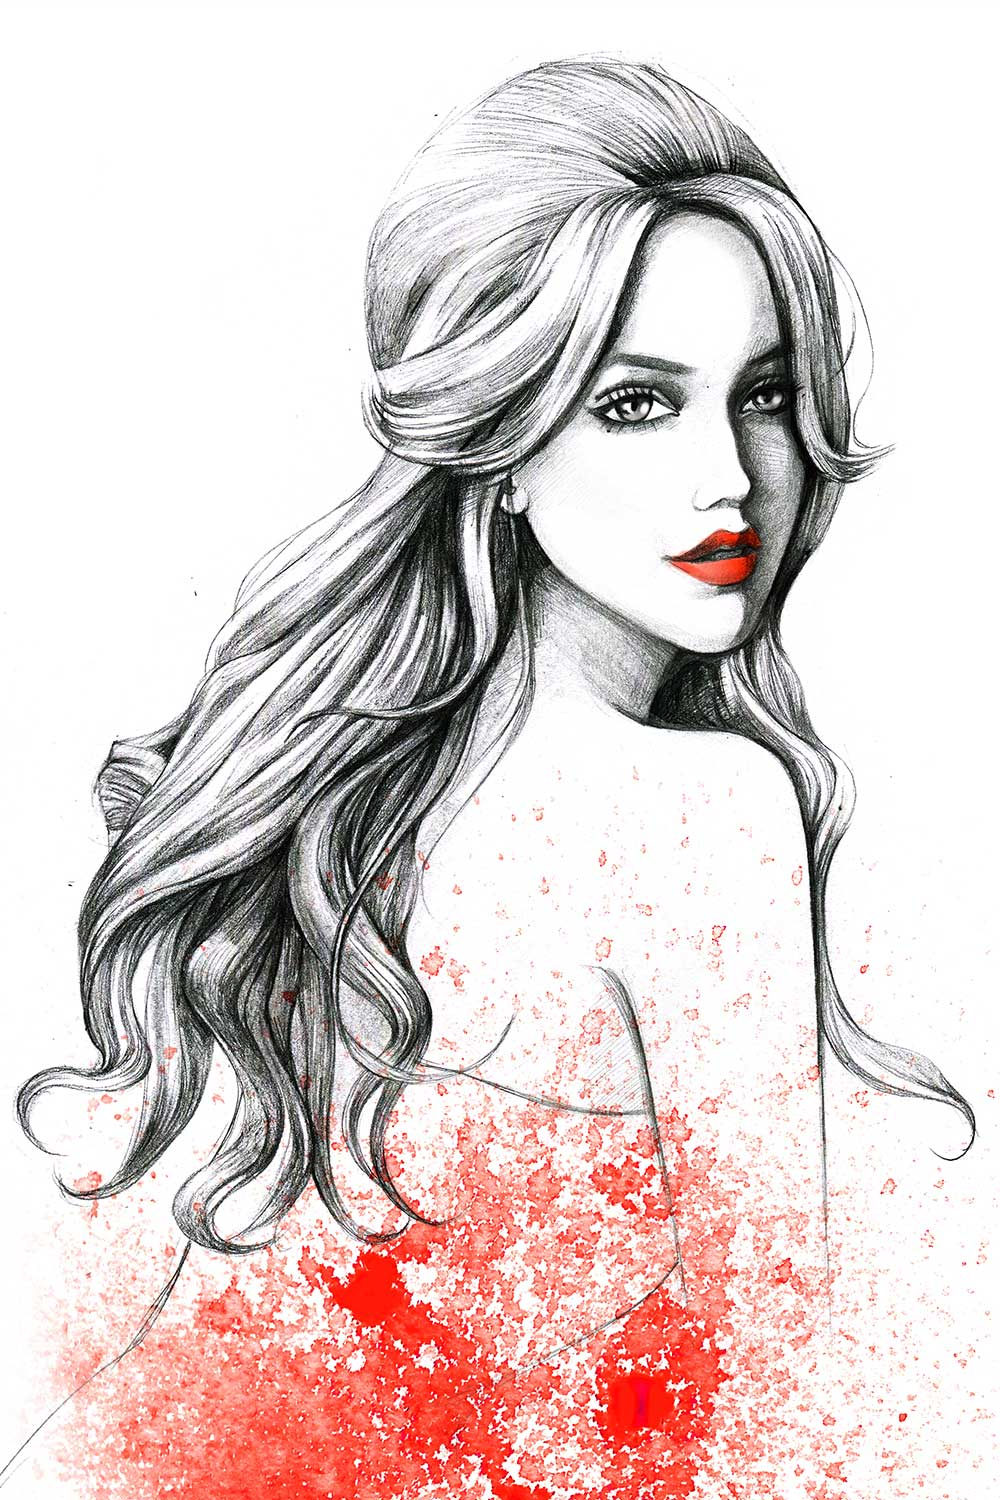 Fashion-Illustration-for-Gino-hair-salon-by-Fashion-Illustrator-Rongrong-DeVoe-copy